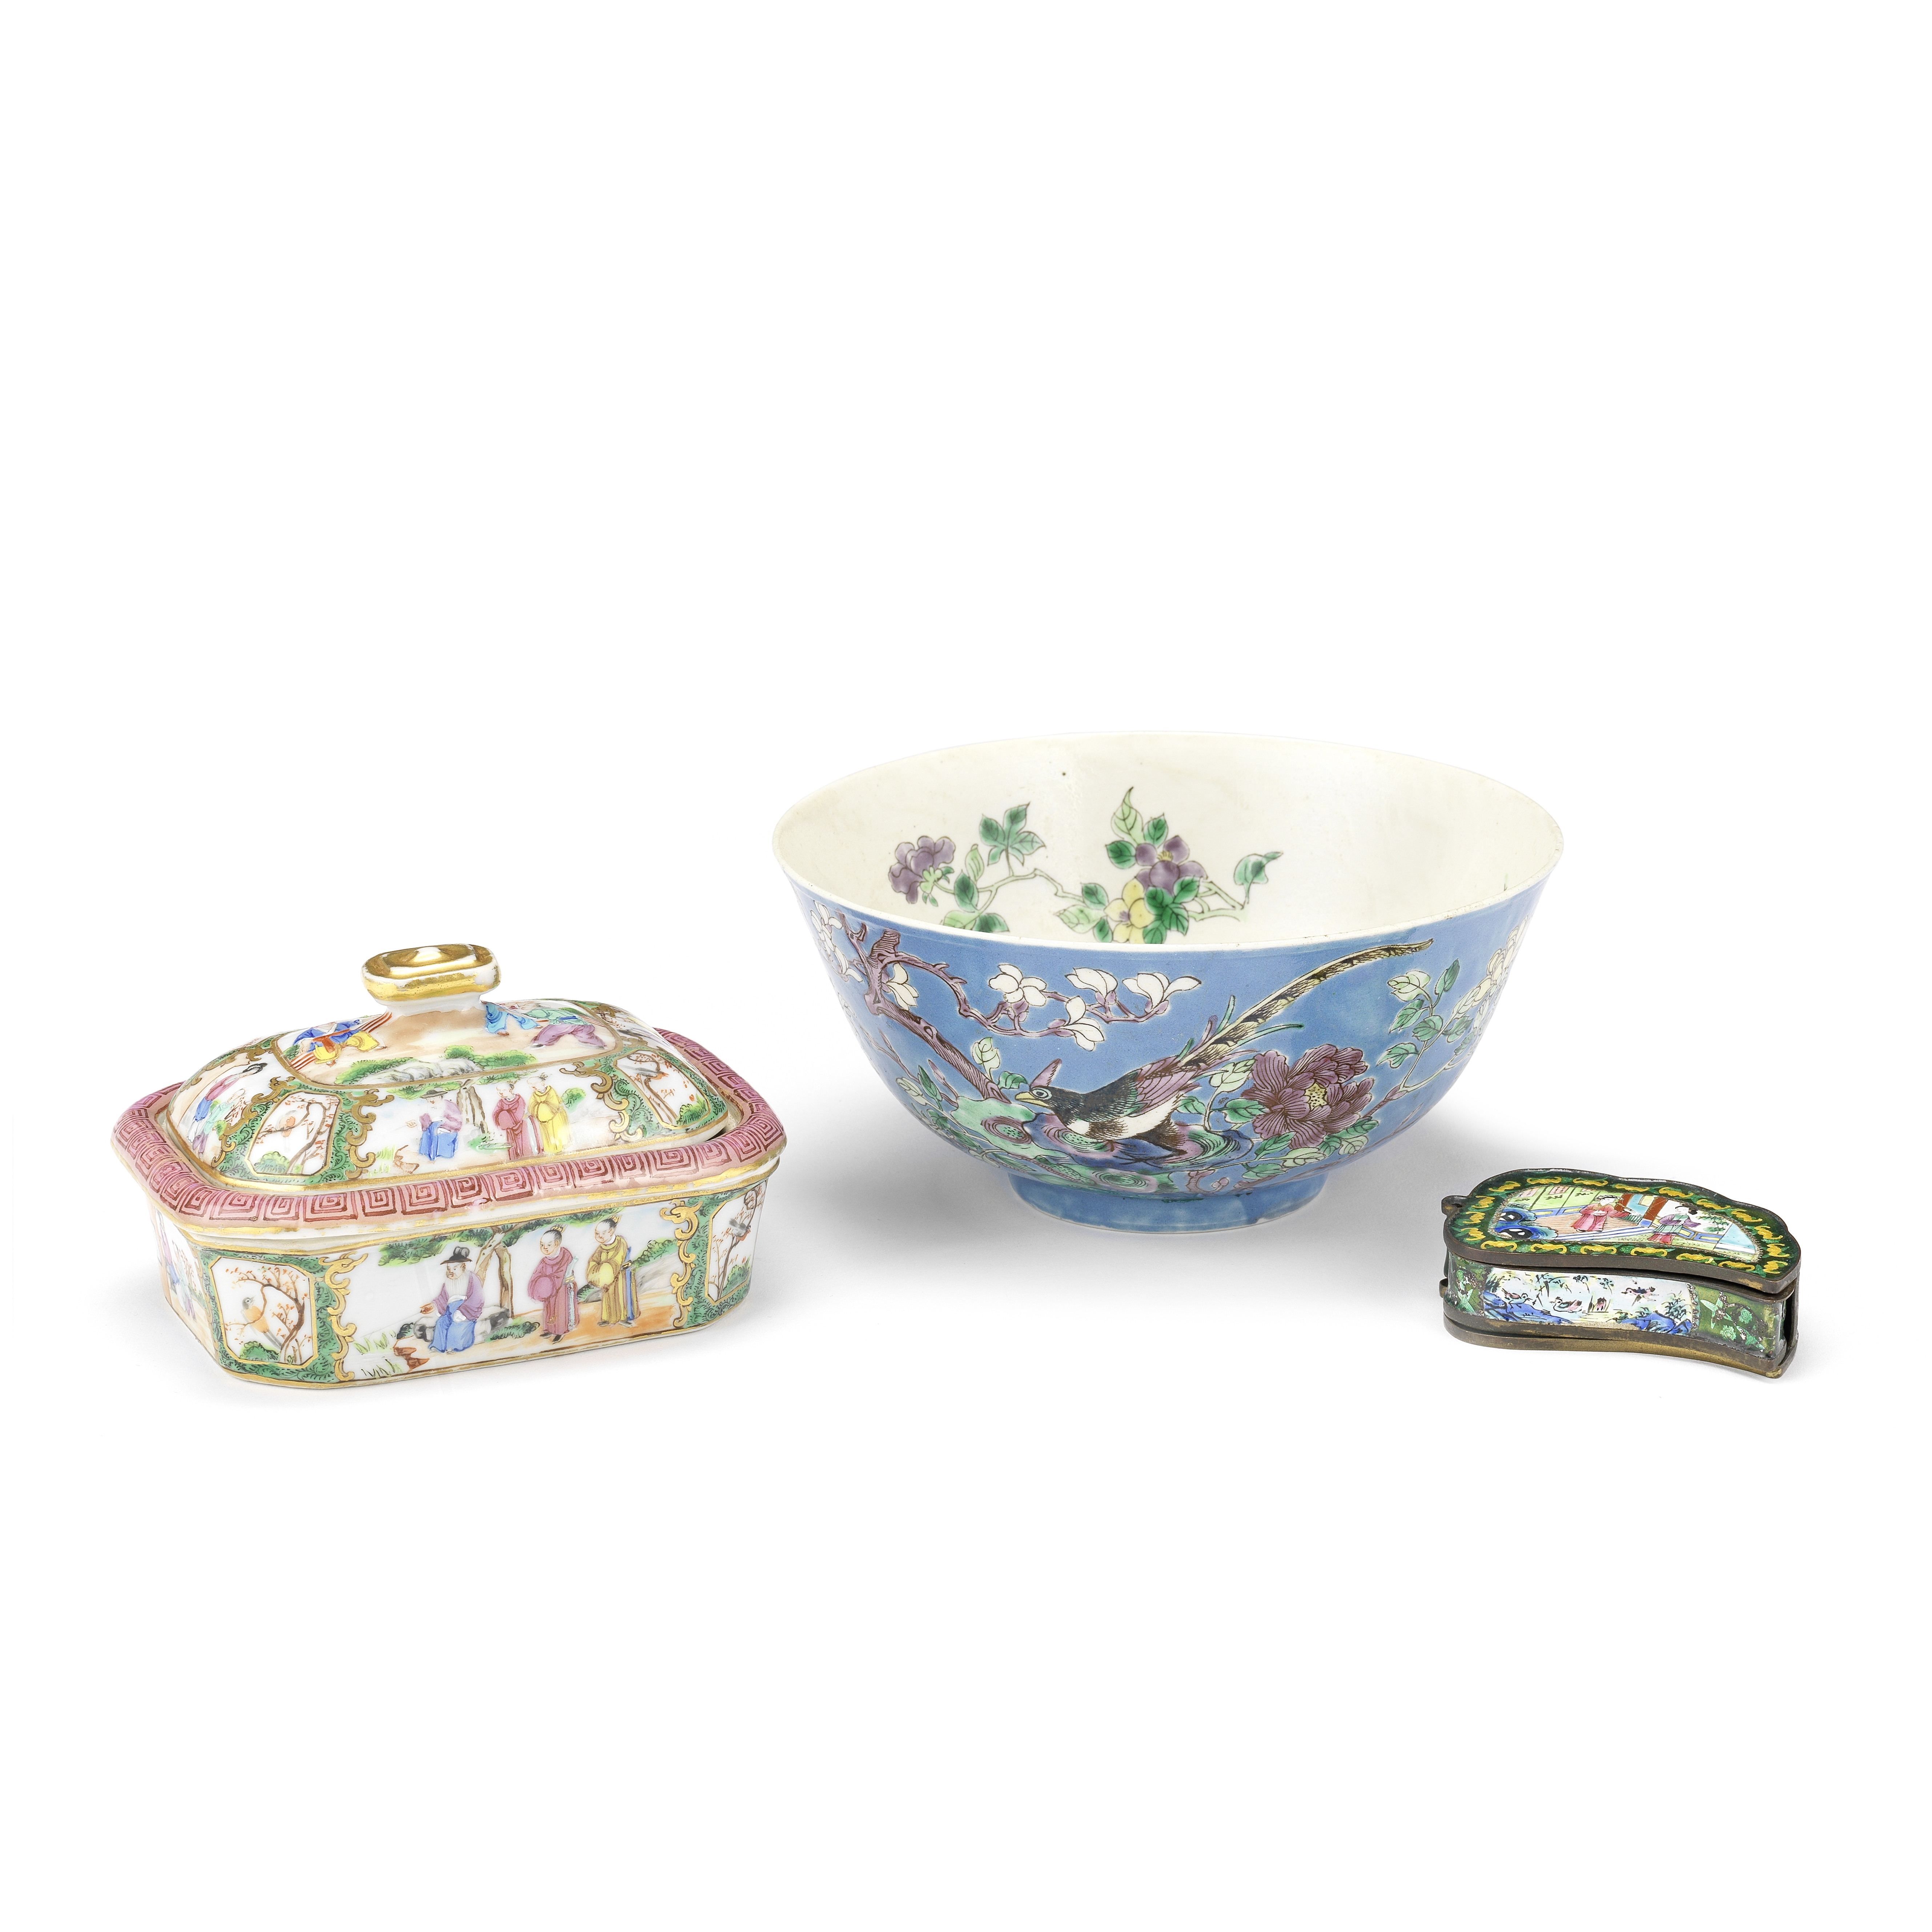 A GROUP COMPRISING A FAMILLE ROSE CANTON SOAP DISH, A TURQUOISE BOWL AND AN ENAMELLED COSMETICS B...